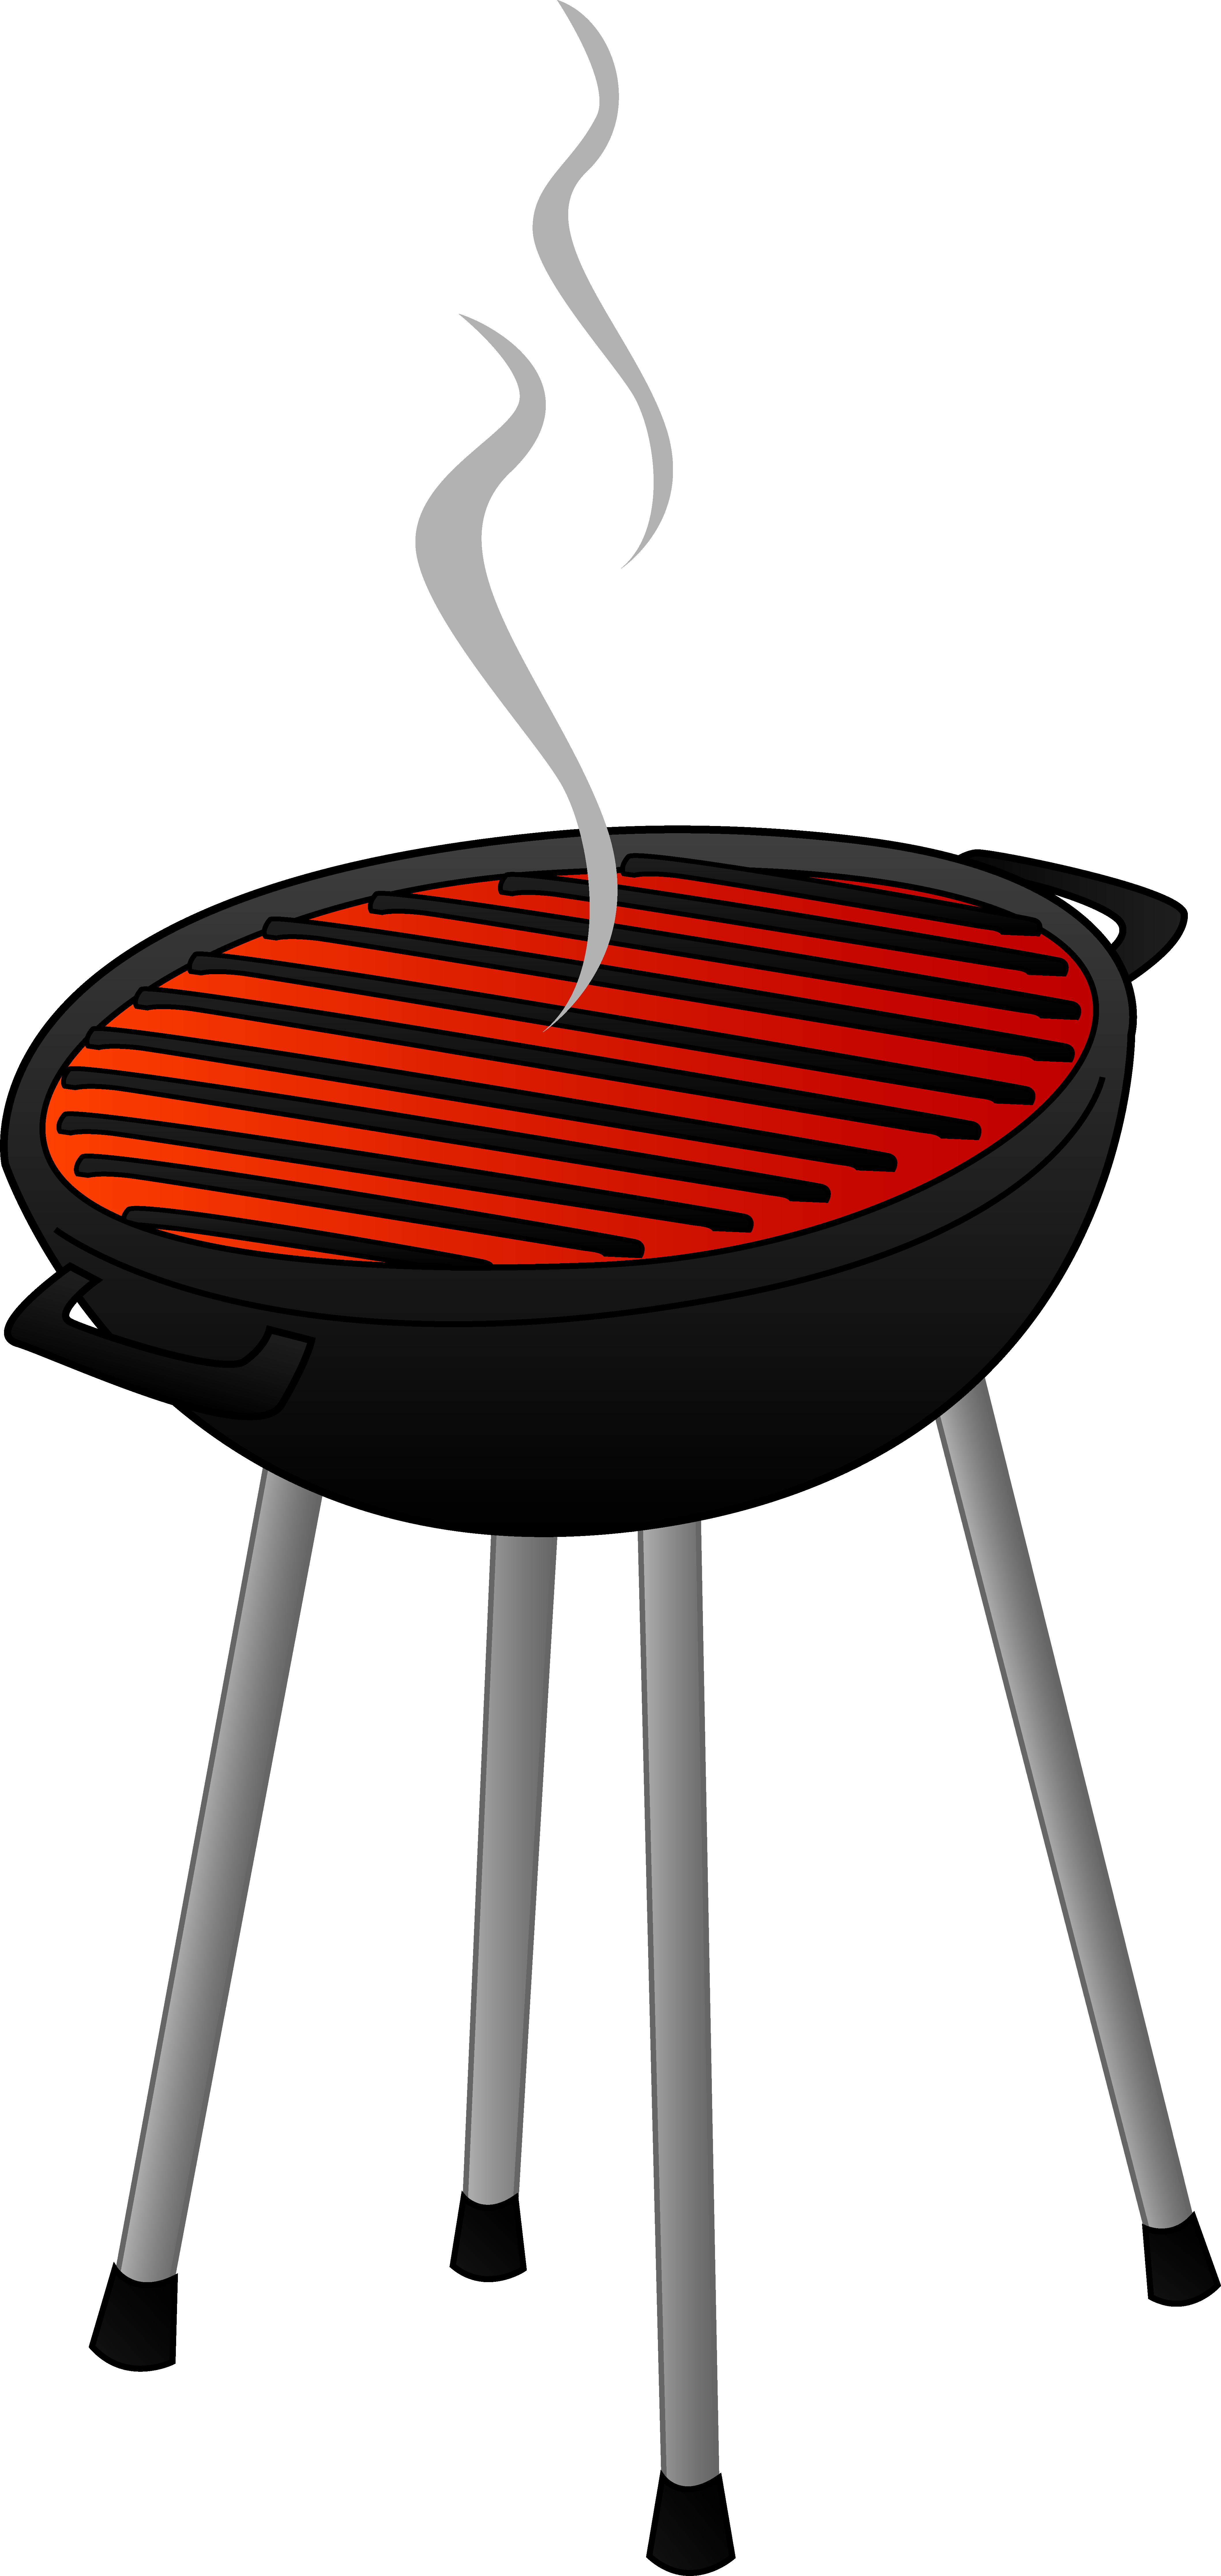 Grill clipart kitchen. Pin by mary barnes